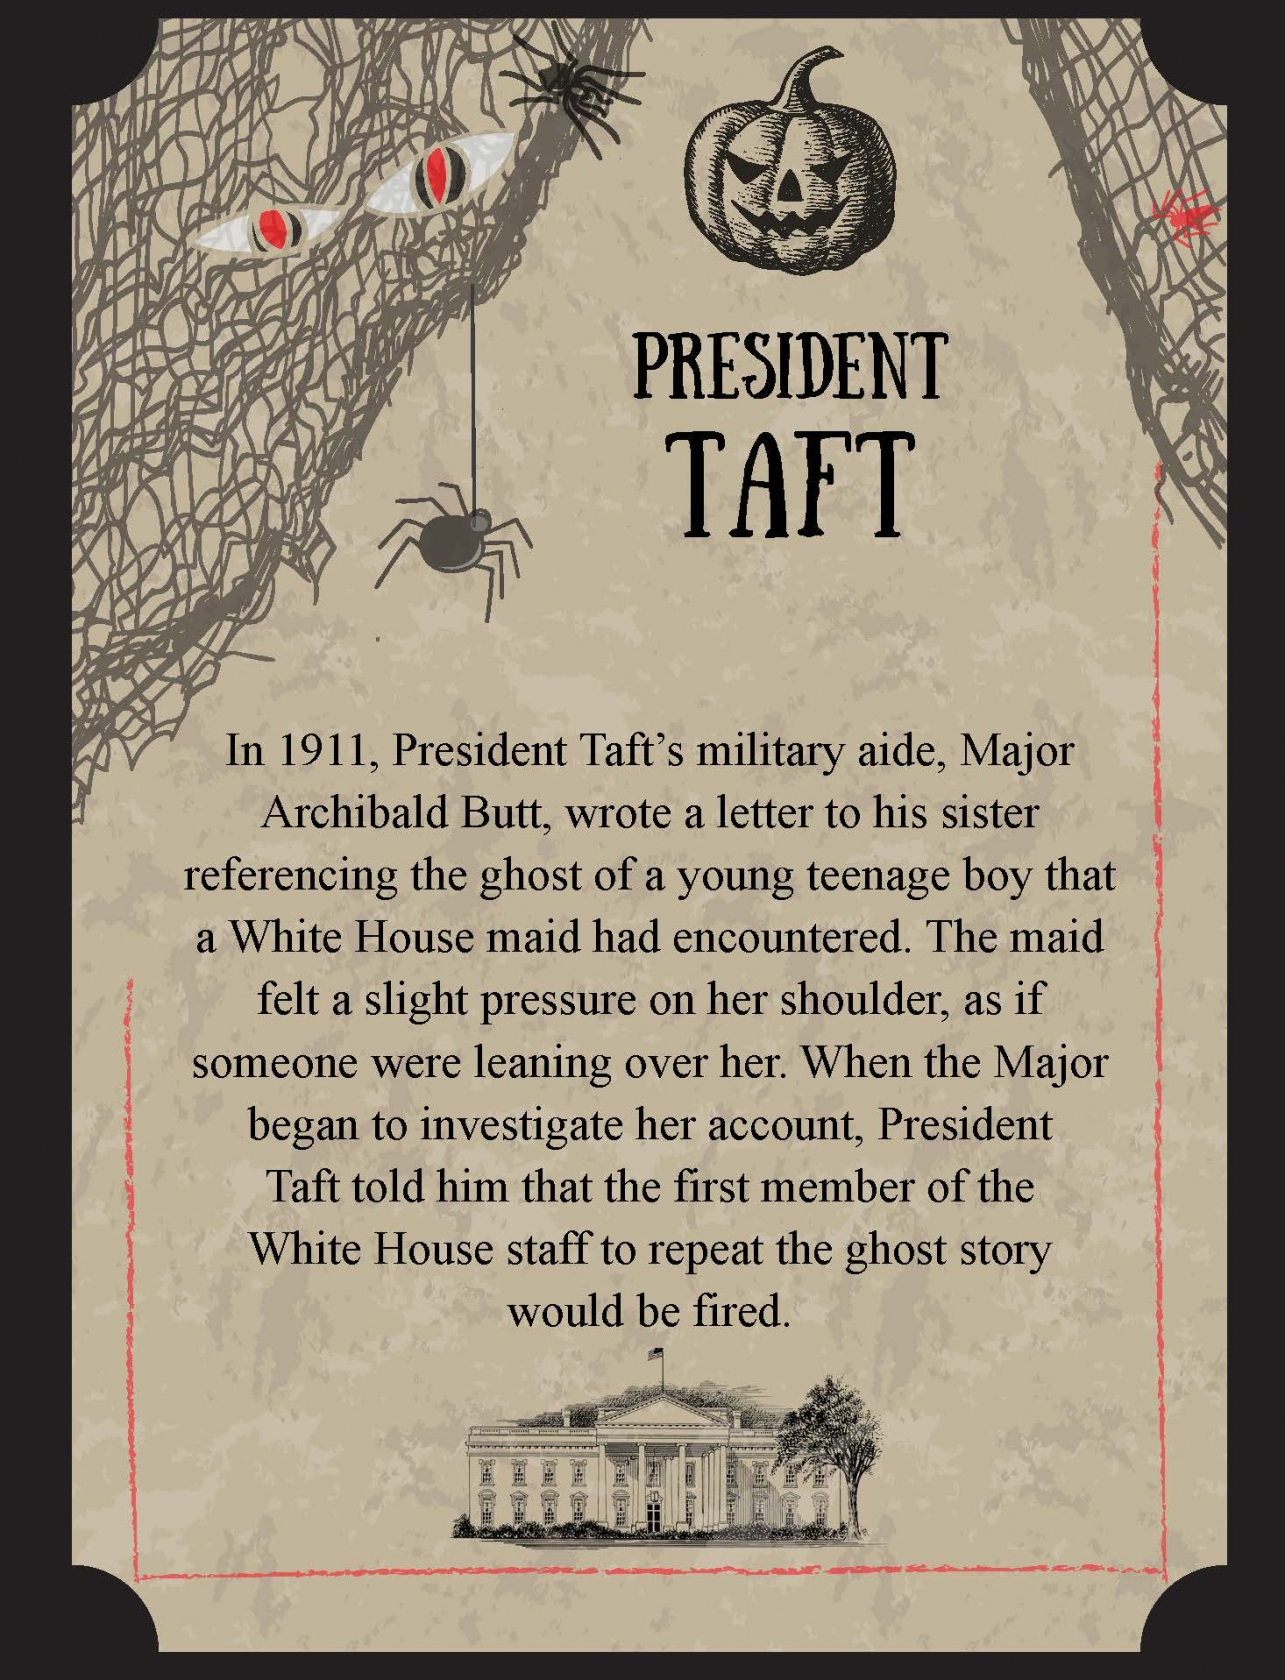 In 1911, President Taft's military aide, Major Archibald Butt, wrote a letter to his sister referencing the ghost of a young teenage boy that a White House maid had encountered. The maid felt a slight pressure on her shoulder, as if someone were leaning over her. When the Major began to investigate her account, President Taft told him that the first member of the White House staff to repeat the ghost story would be fired.